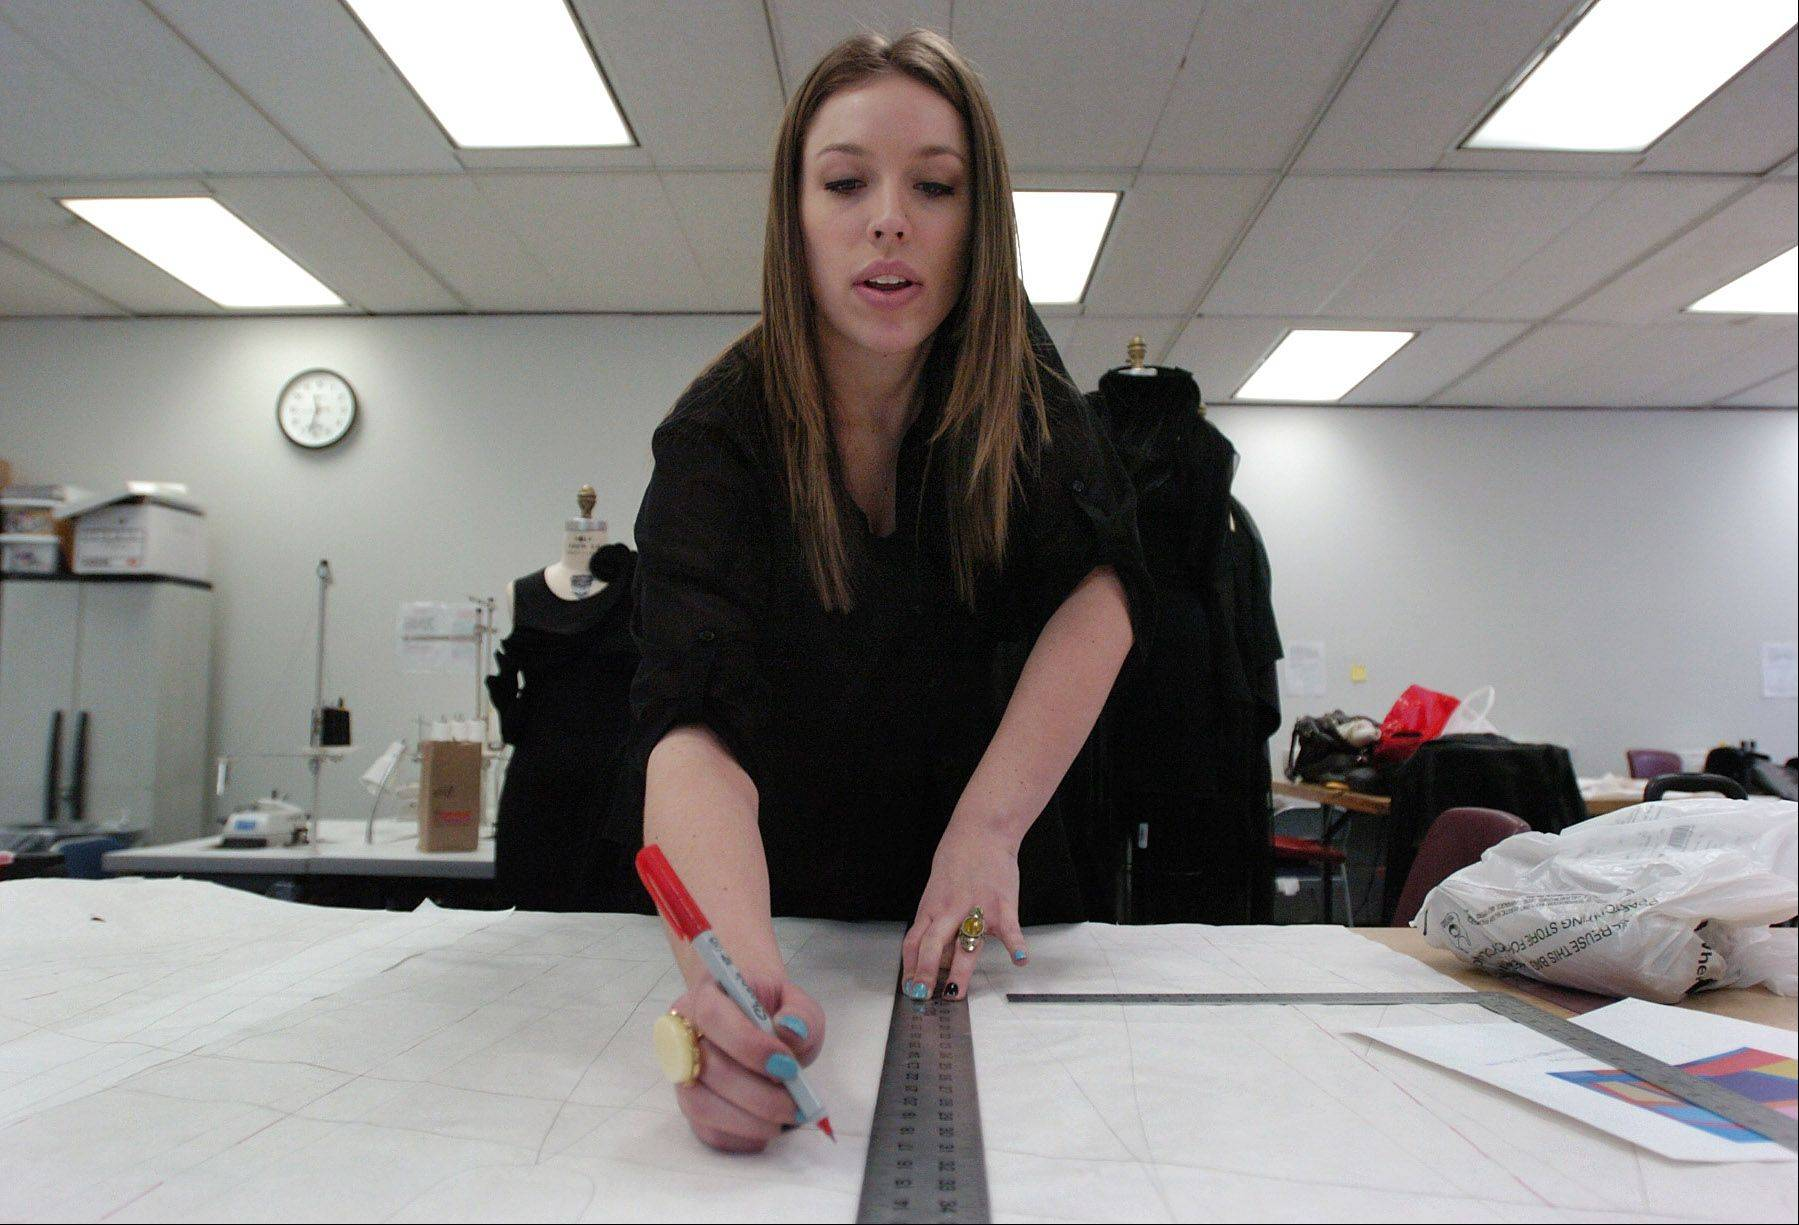 Fashion design student Ali Forsythe, working on a project in her class at Harper College, recently placed second in a national contest with her design of a cardigan made of alpaca fur. The 20-year-old from Mount Prospect hopes to open her own boutique after earning a fashion degree.